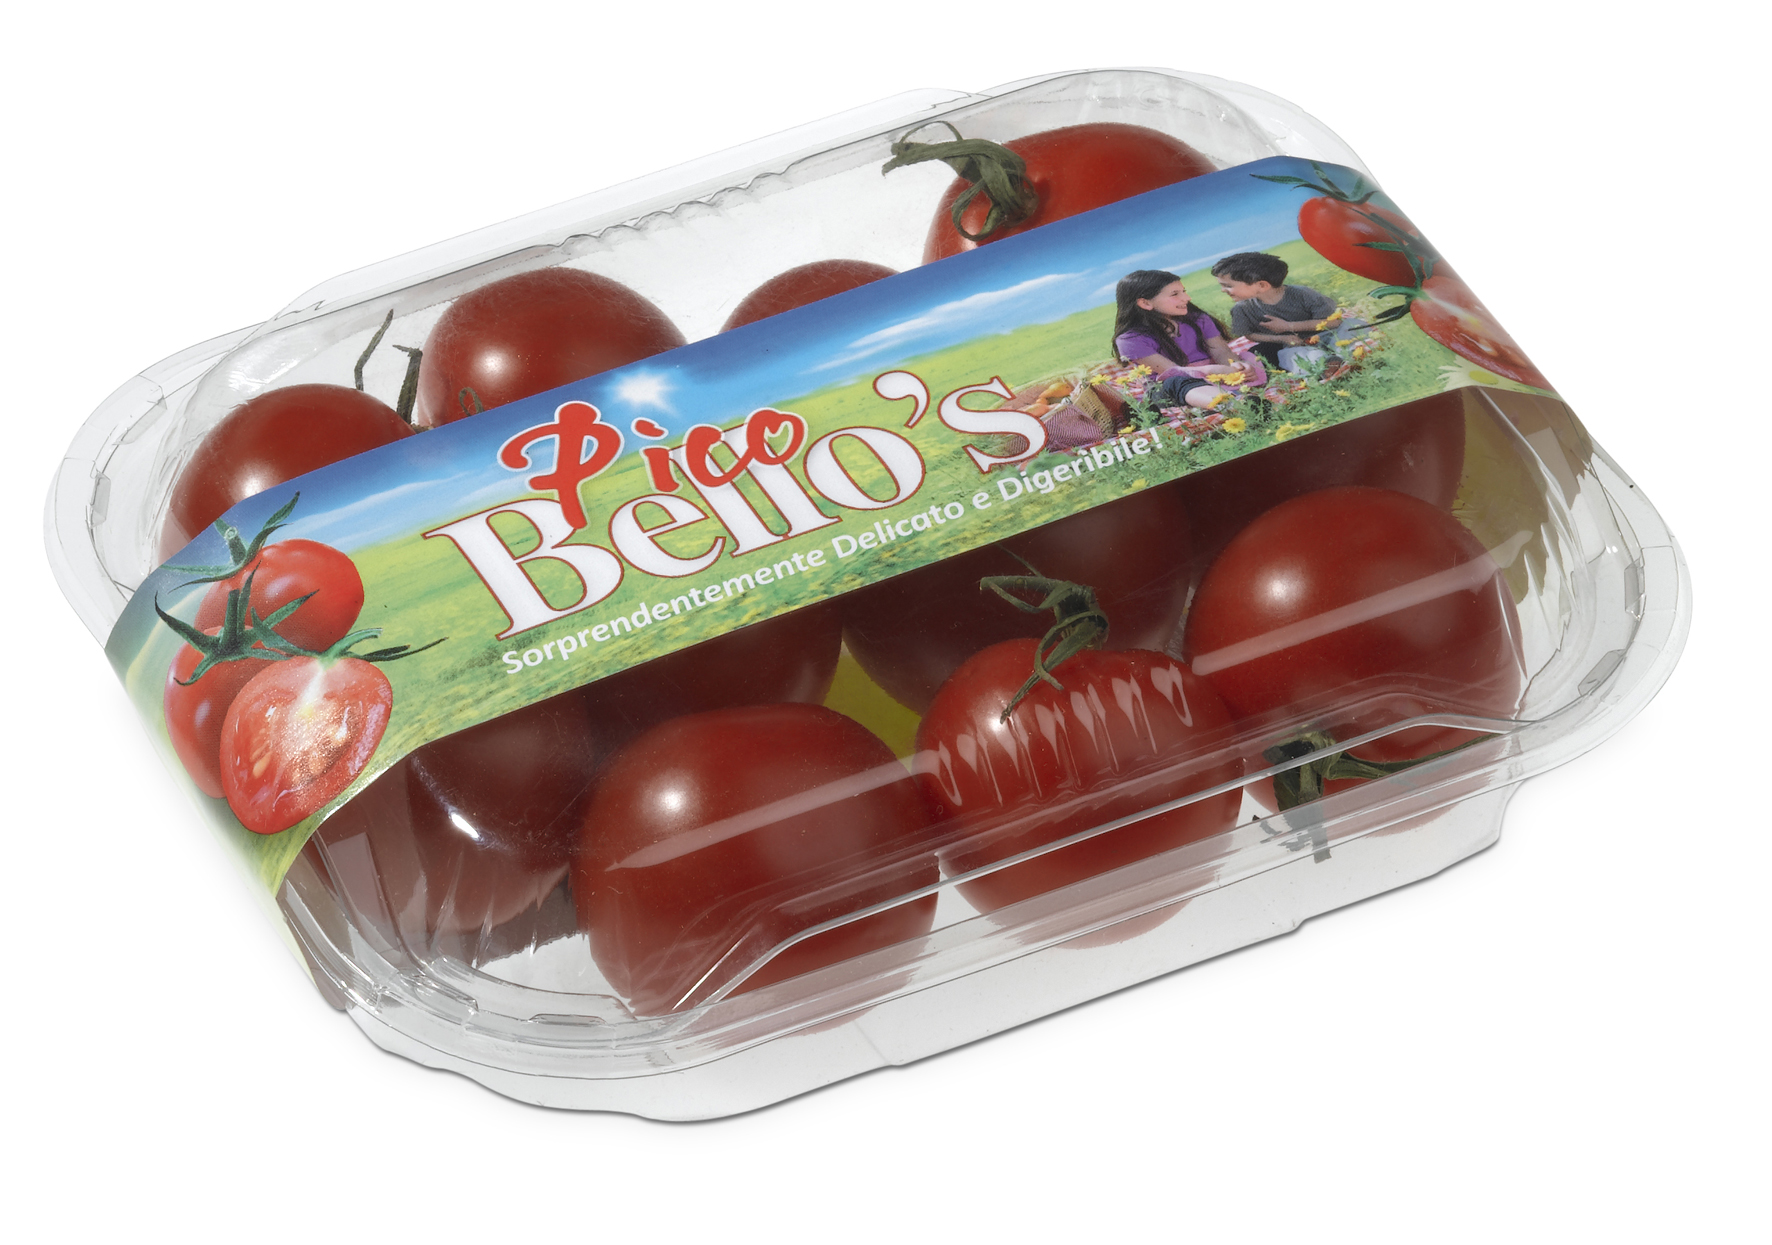 Tomatoes with a band from Bandall